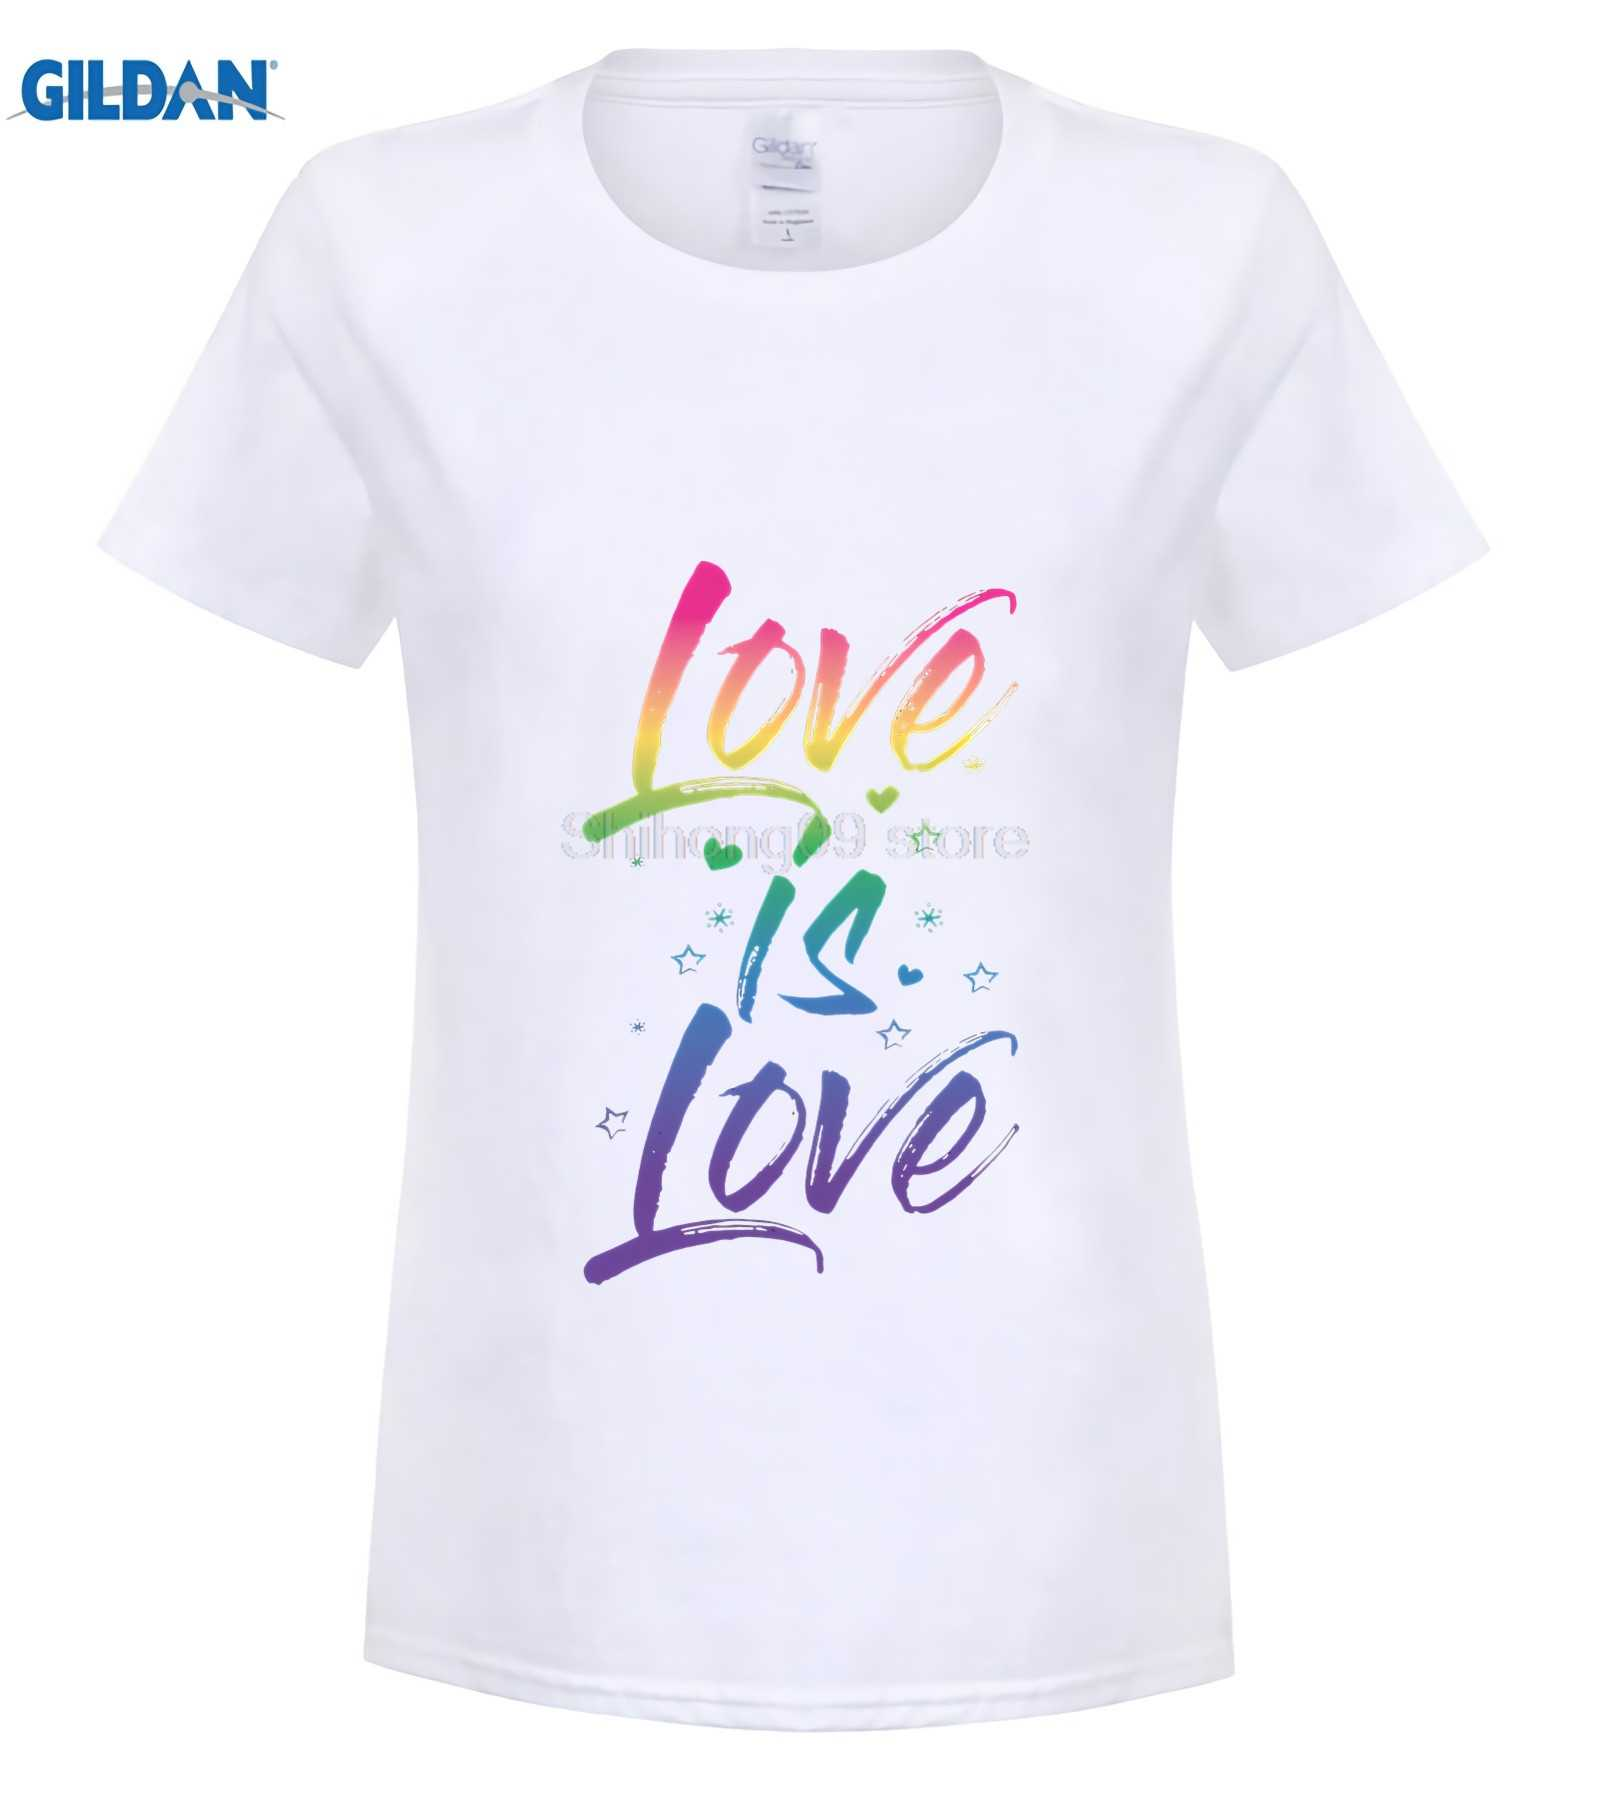 7452d5ee ... GILDAN Gay Pride Shirt Rainbow Script Love is Love LGBT Cute TShirt  Funny men's print t